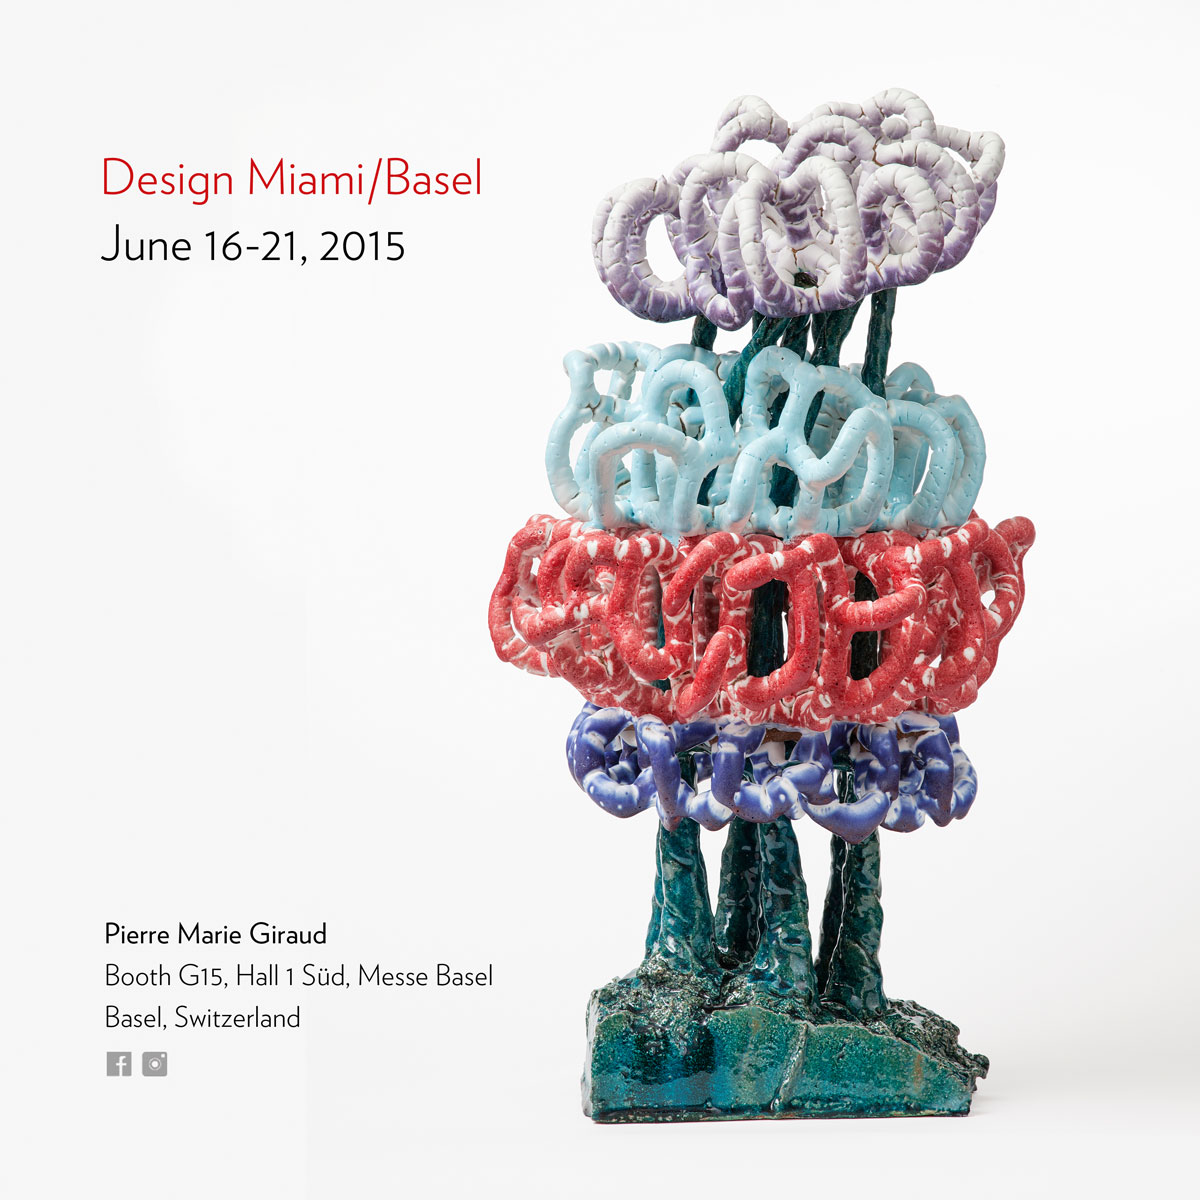 Design Miami /Basel 2015